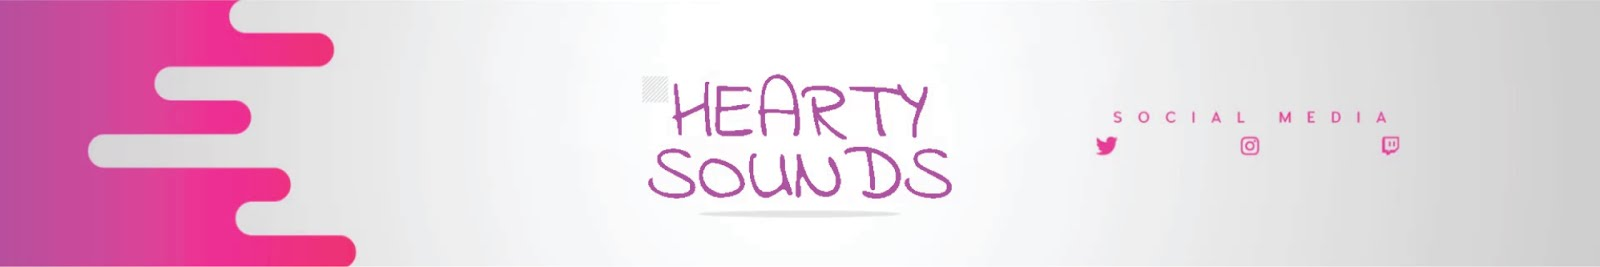 HEARTYSOUNDS